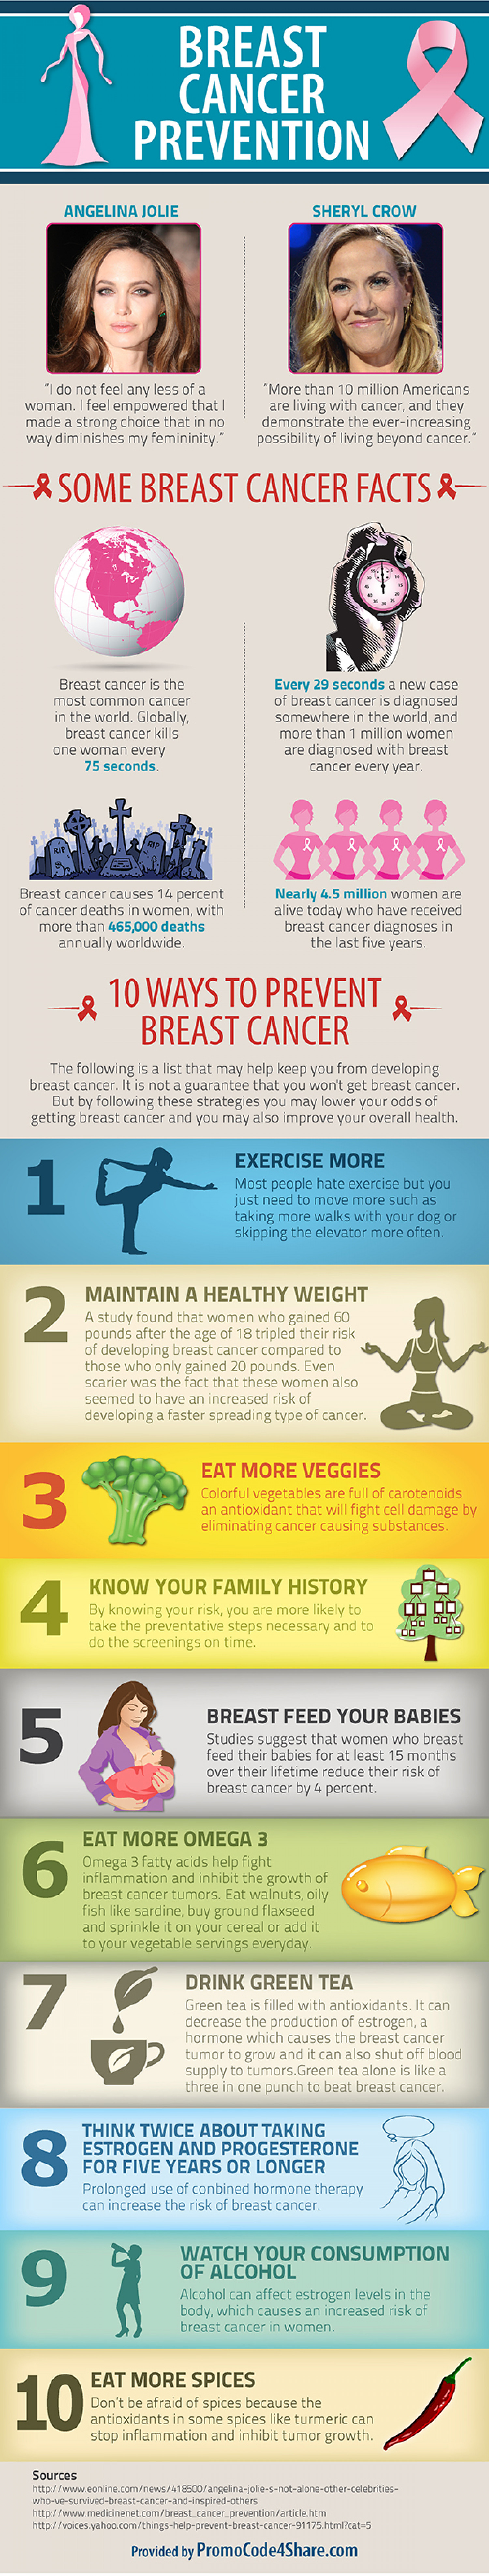 10 ways to prevent Breast Cancer Infographic